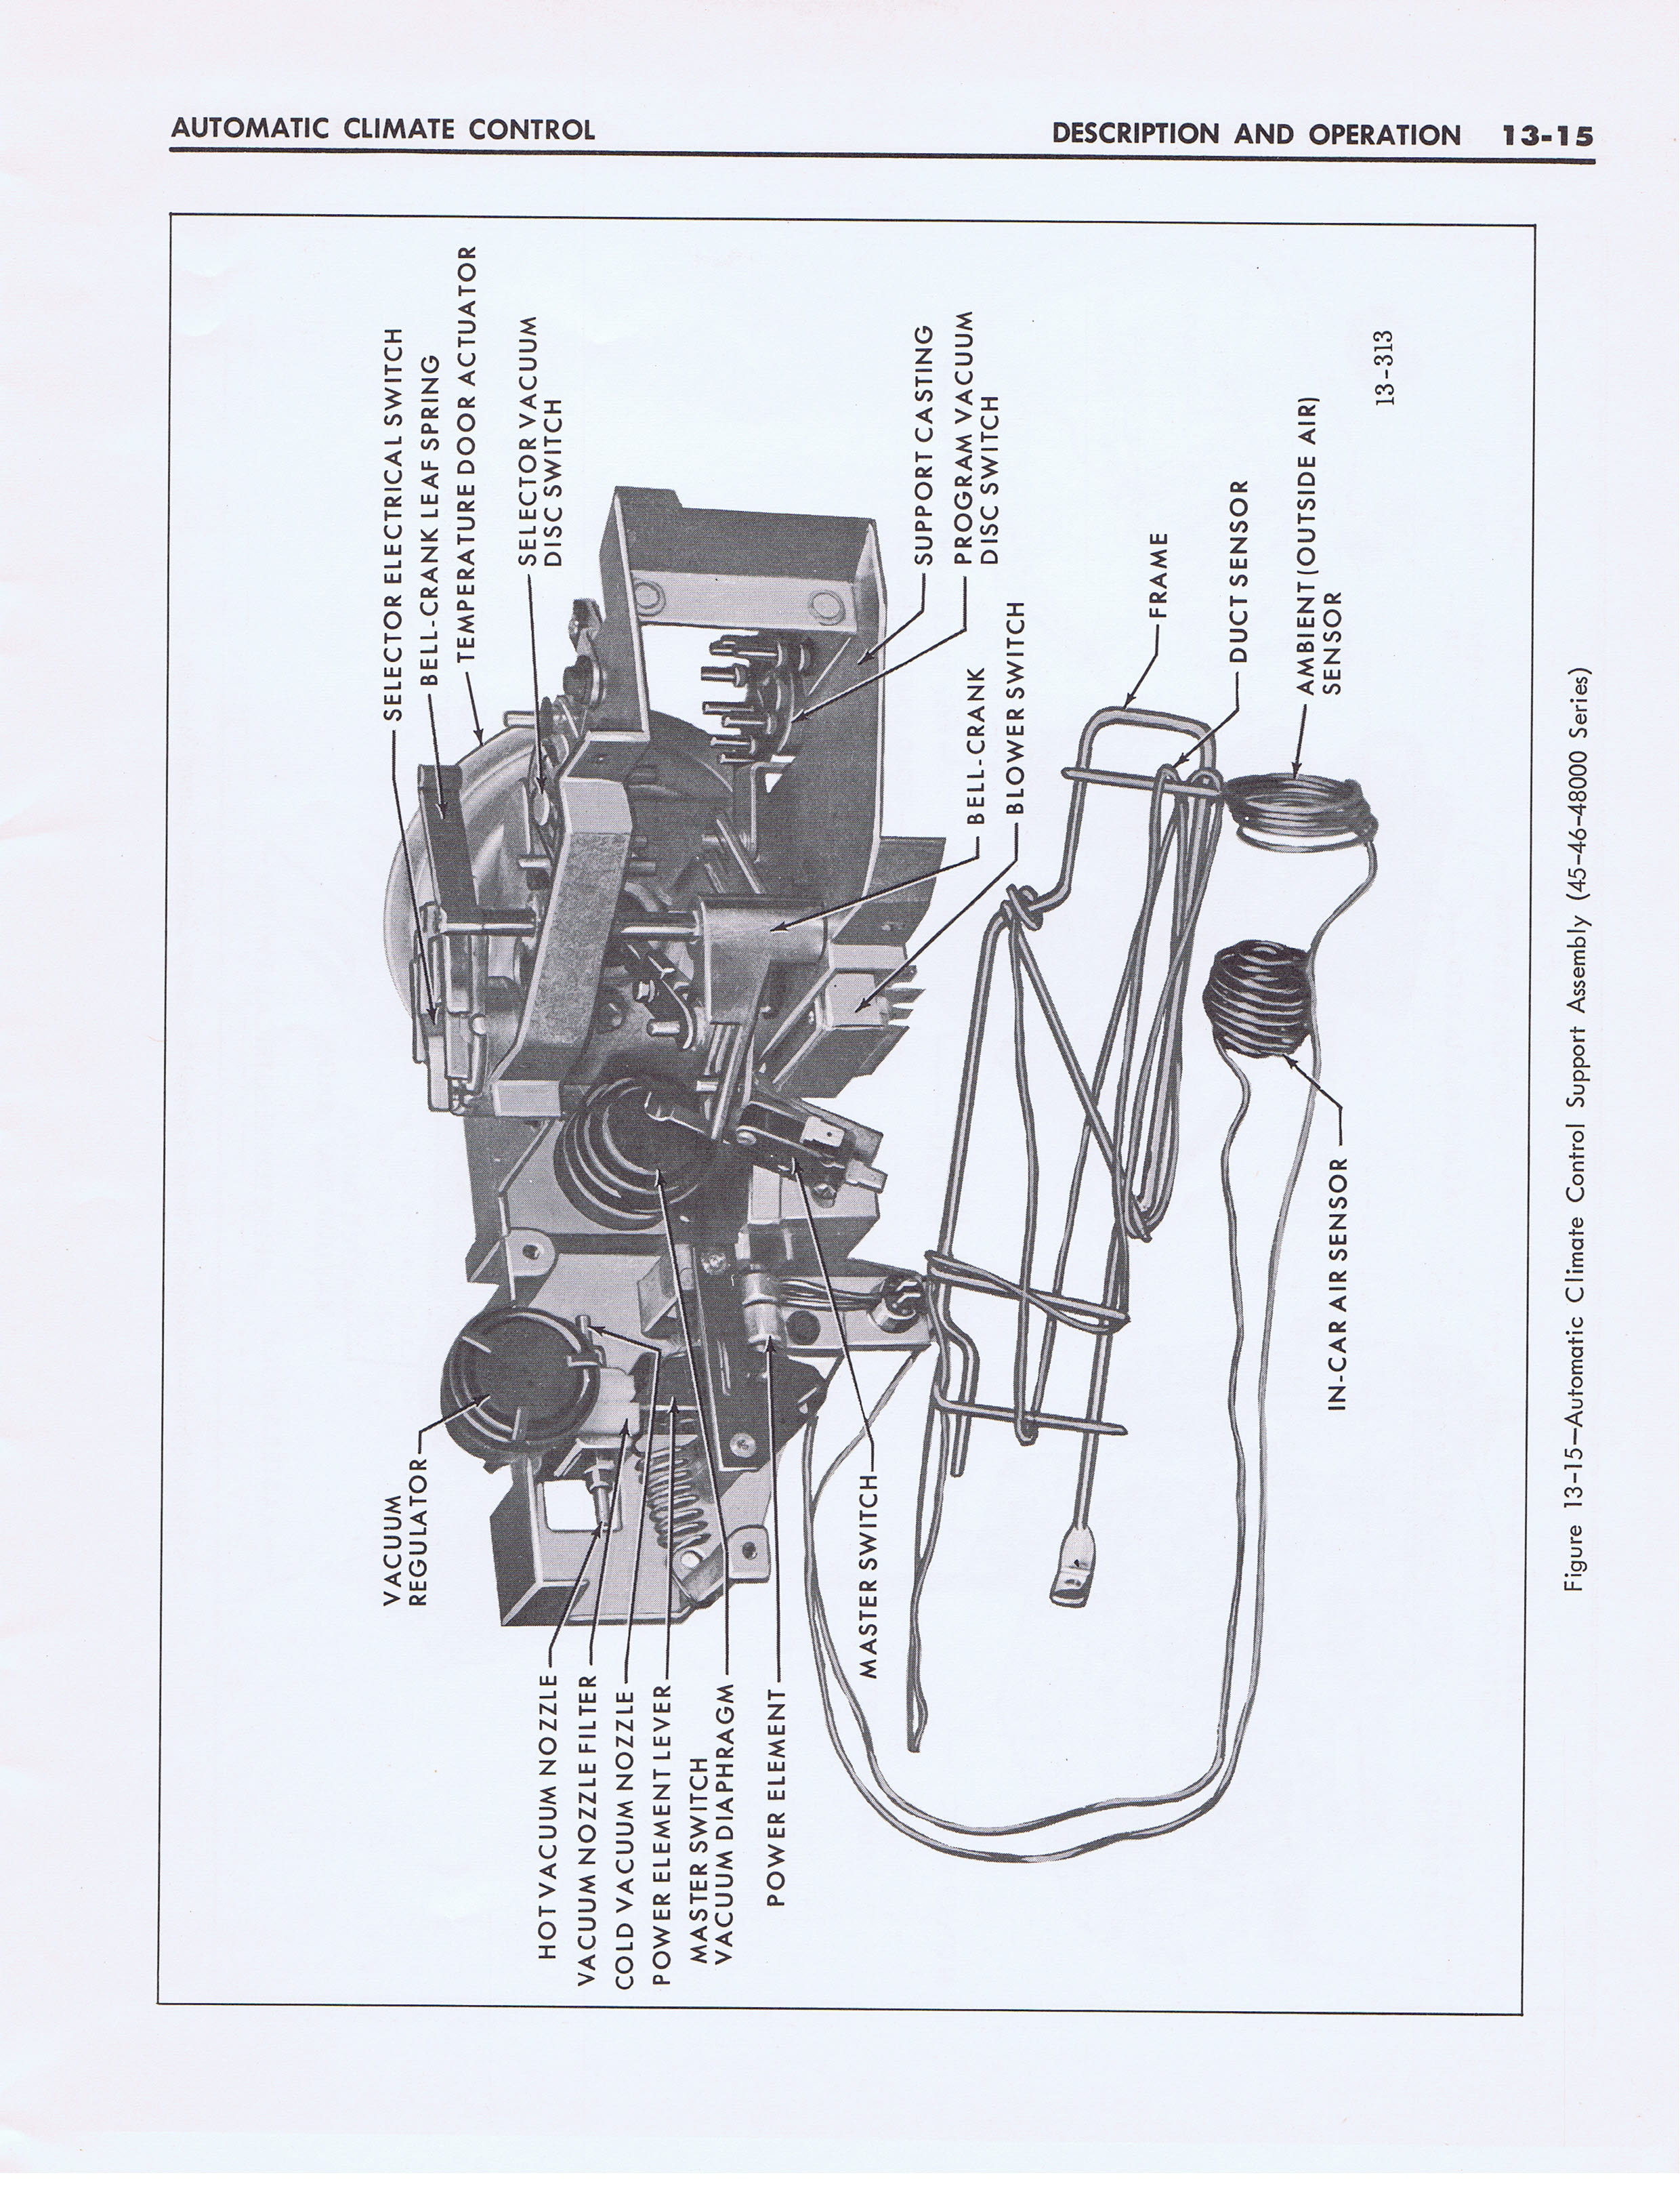 1967 Buick Automatic Climate Control (Second Type) page 17